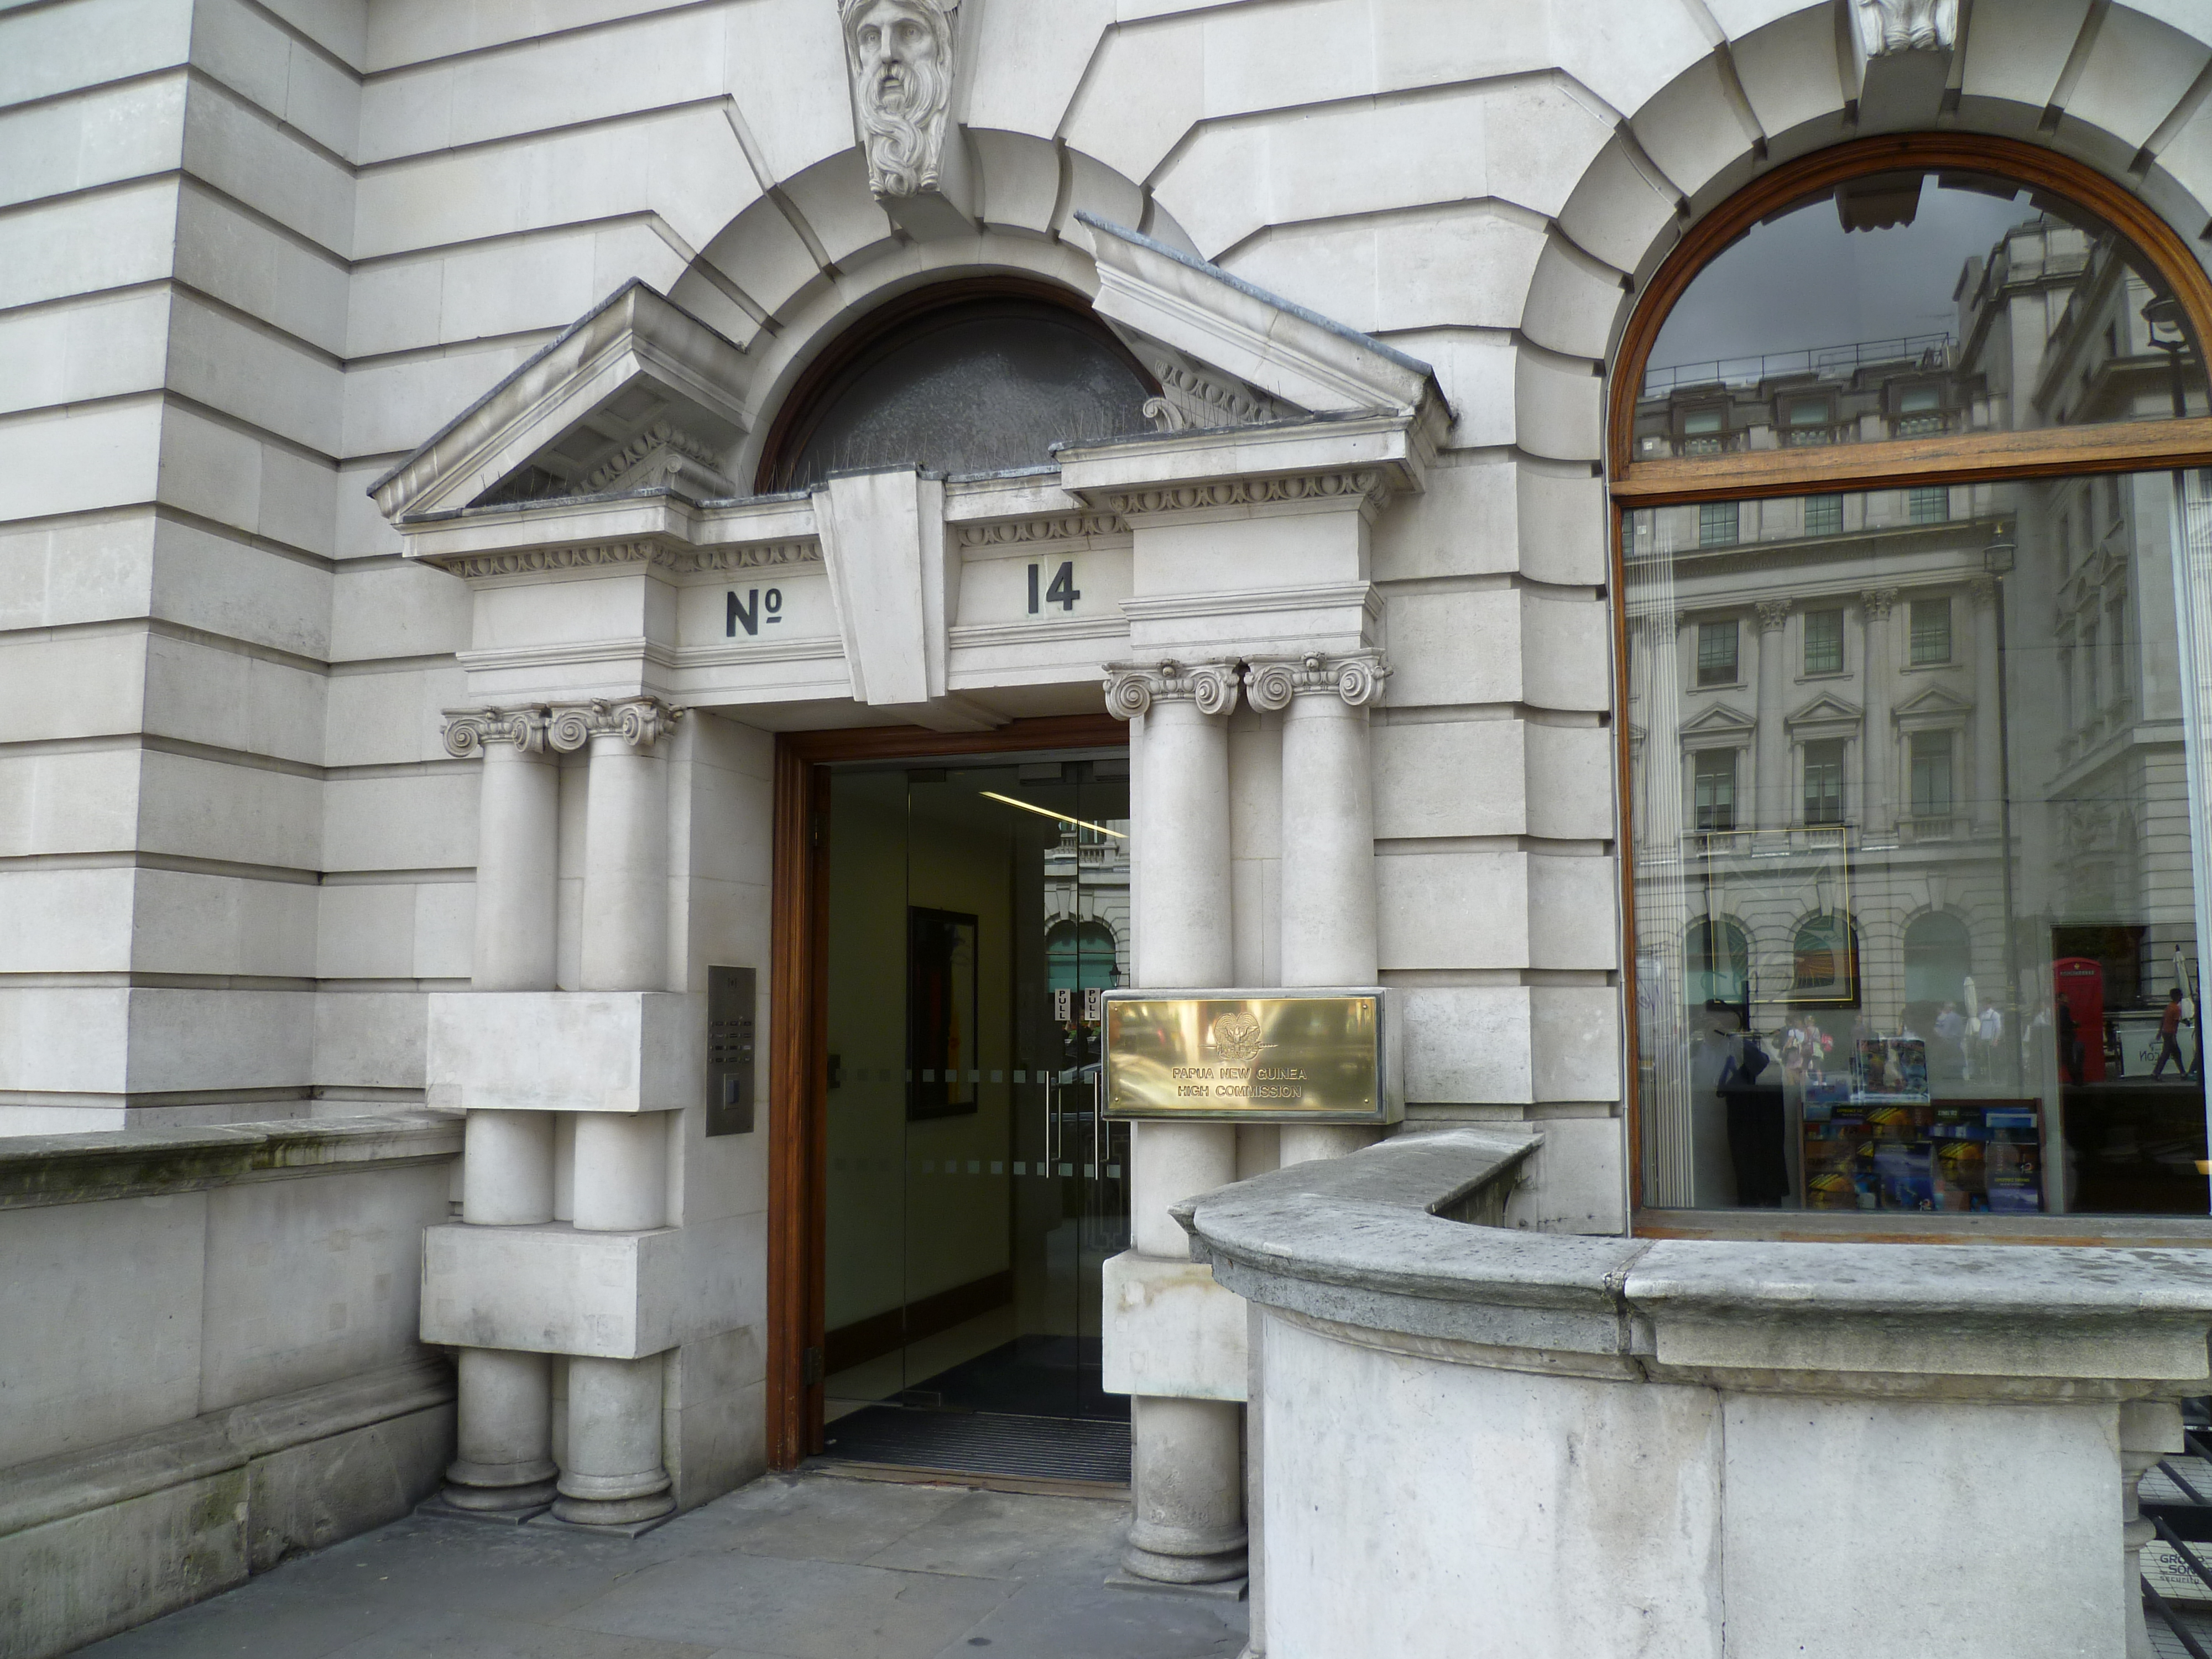 File:Papua New Guinea High Commission, London.JPG.